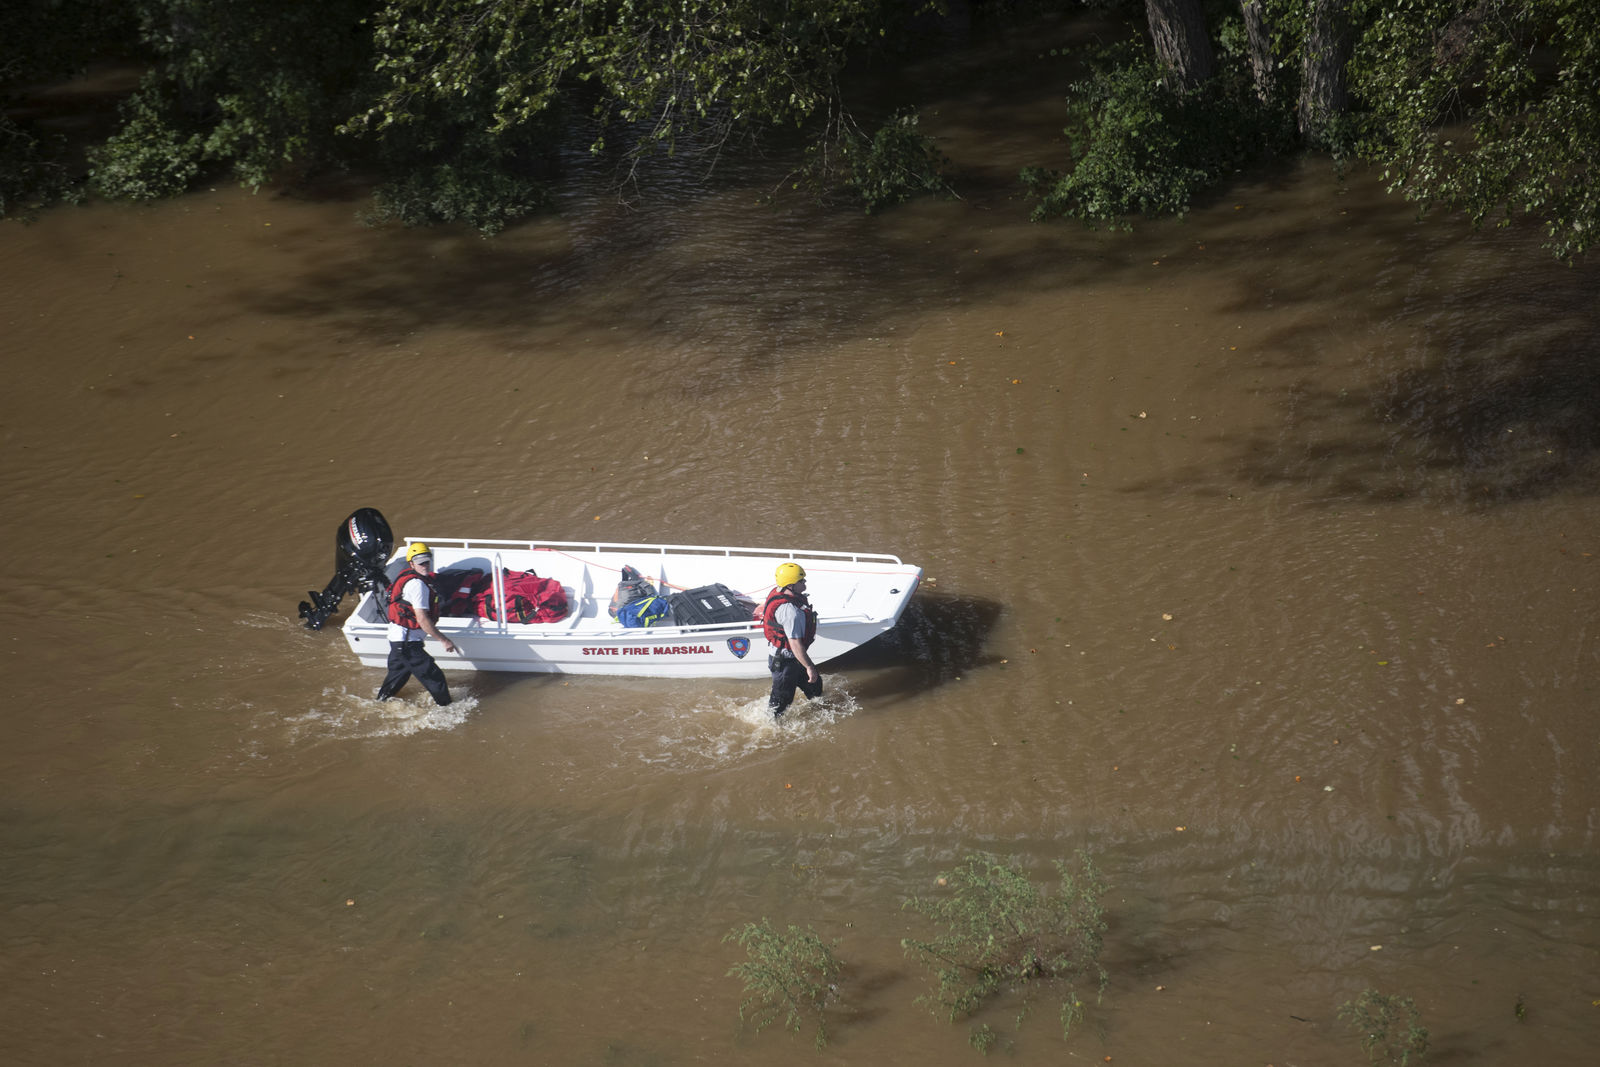 A rescue team pushes a boat towards stranded motorists after Hurricane Florence struck the Carolinas Monday, Sept. 17, 2018, near Wallace, S.C. (AP Photo/Sean Rayford)